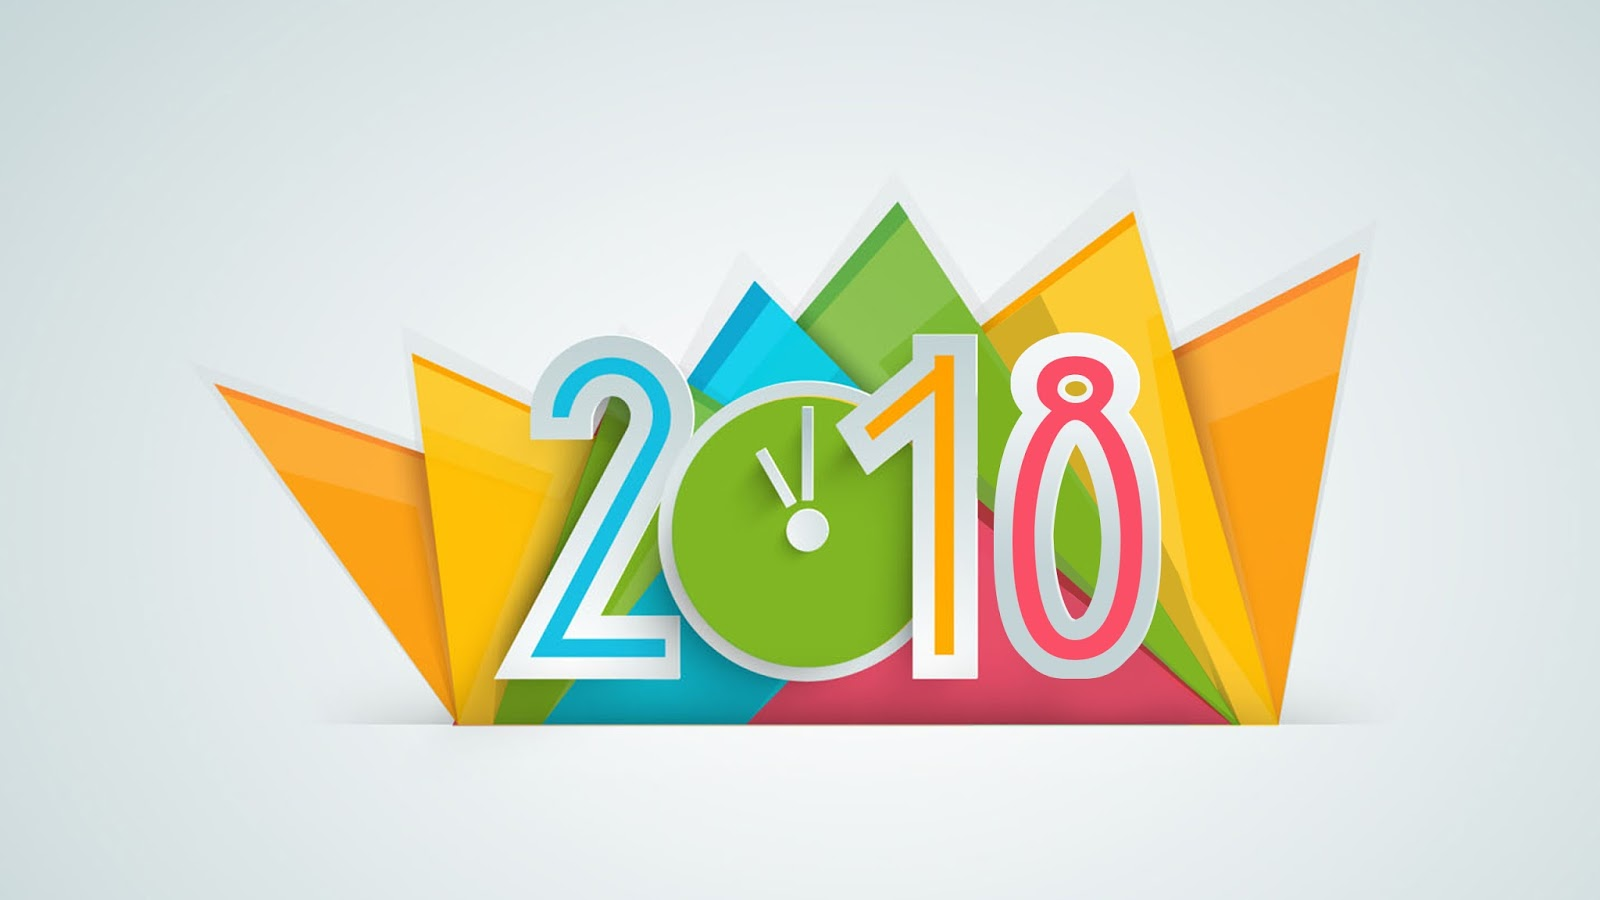 2018 happy new year wallpapers